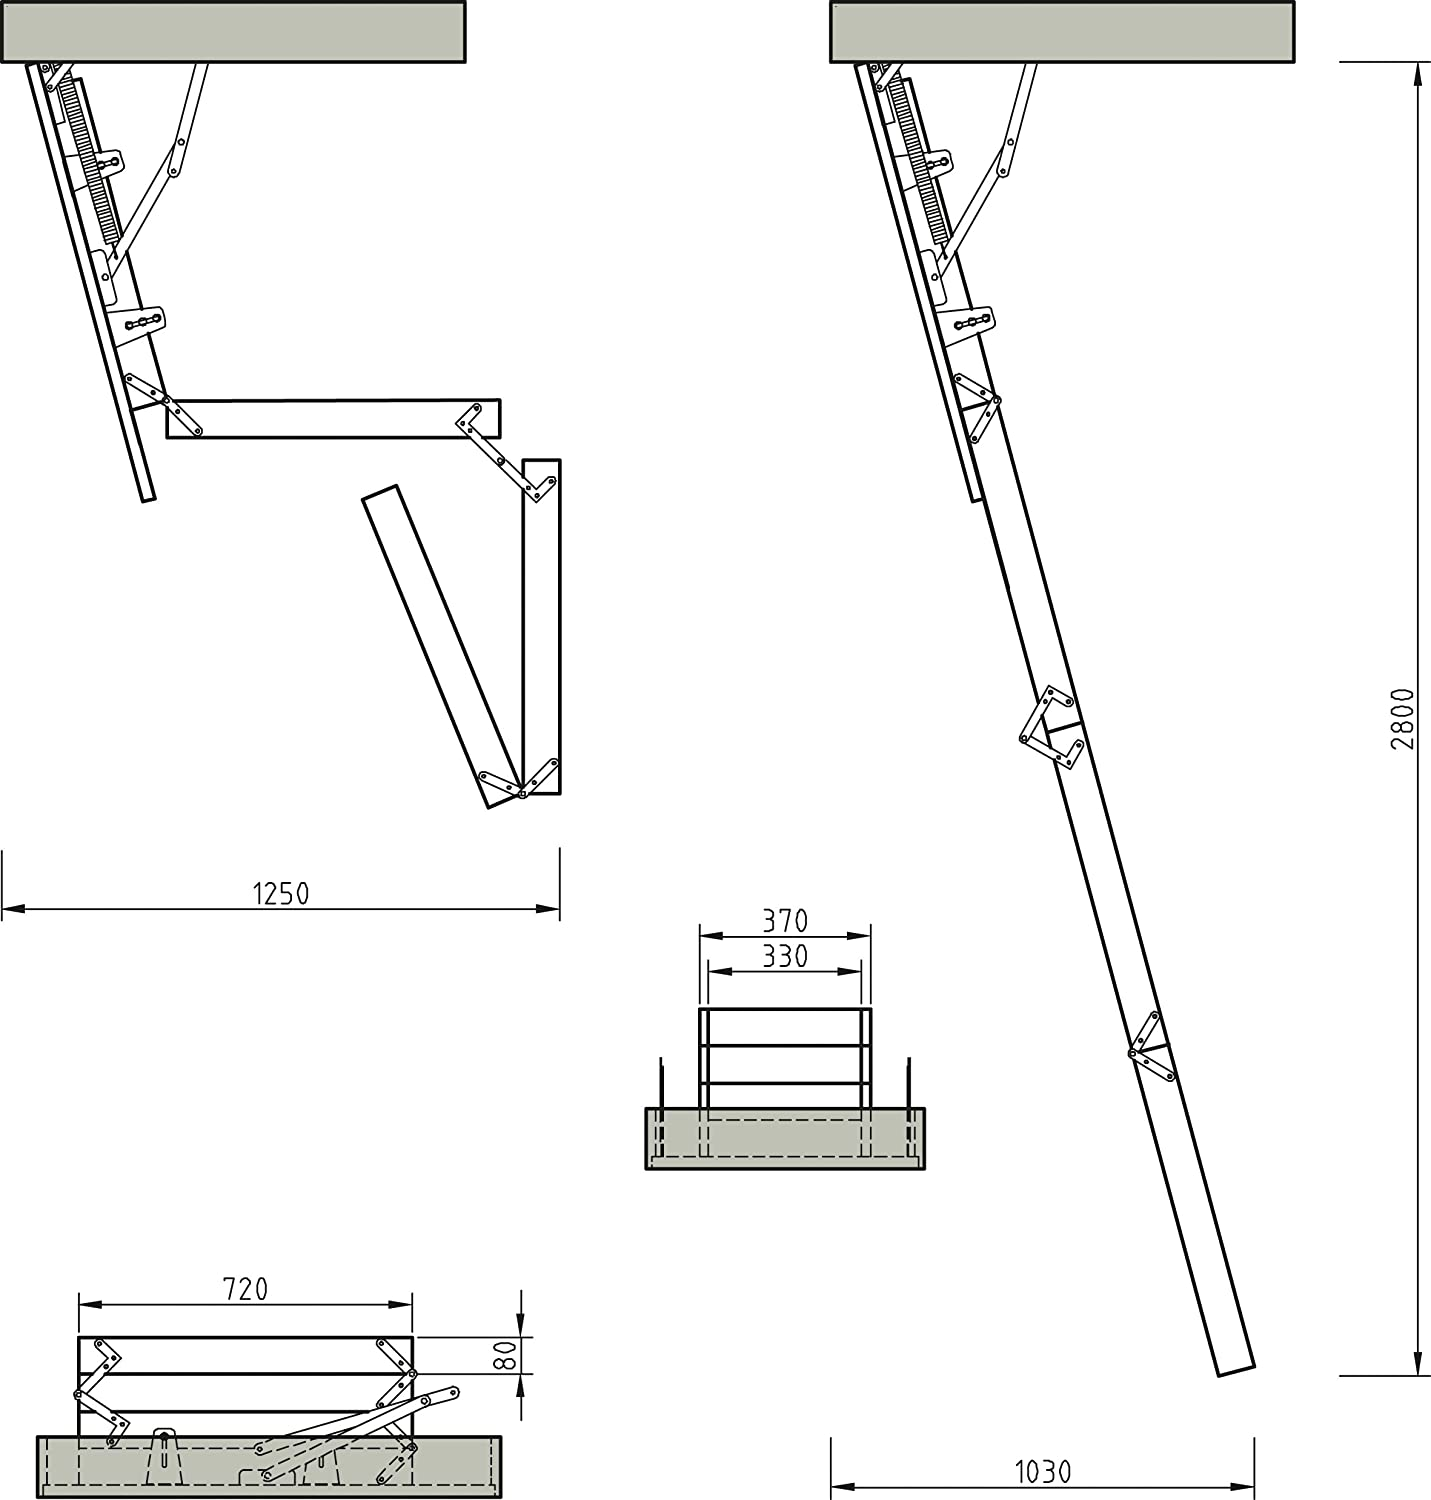 lyte easiloft 4 section timber loft ladder fully assembled including insulated hatch door and handrail amazoncouk diy u0026 tools